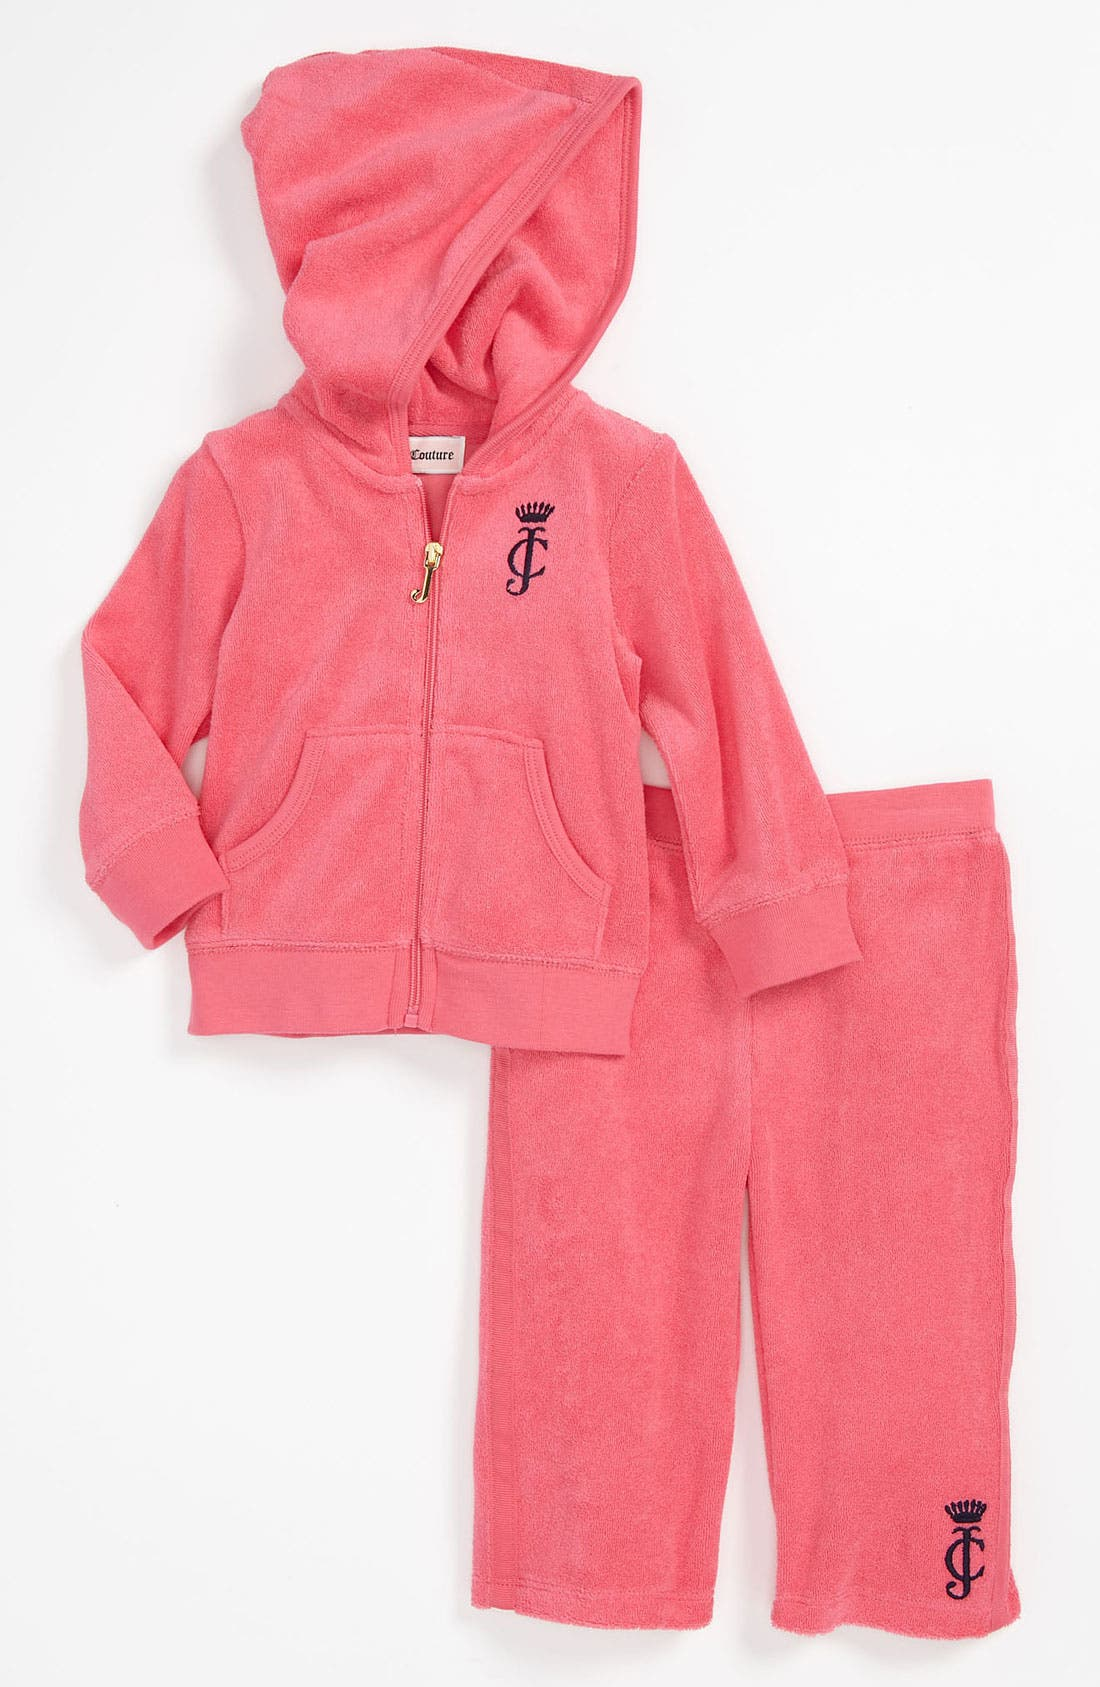 Alternate Image 1 Selected - Juicy Couture Terry Cloth Hoodie & Pants (Baby)